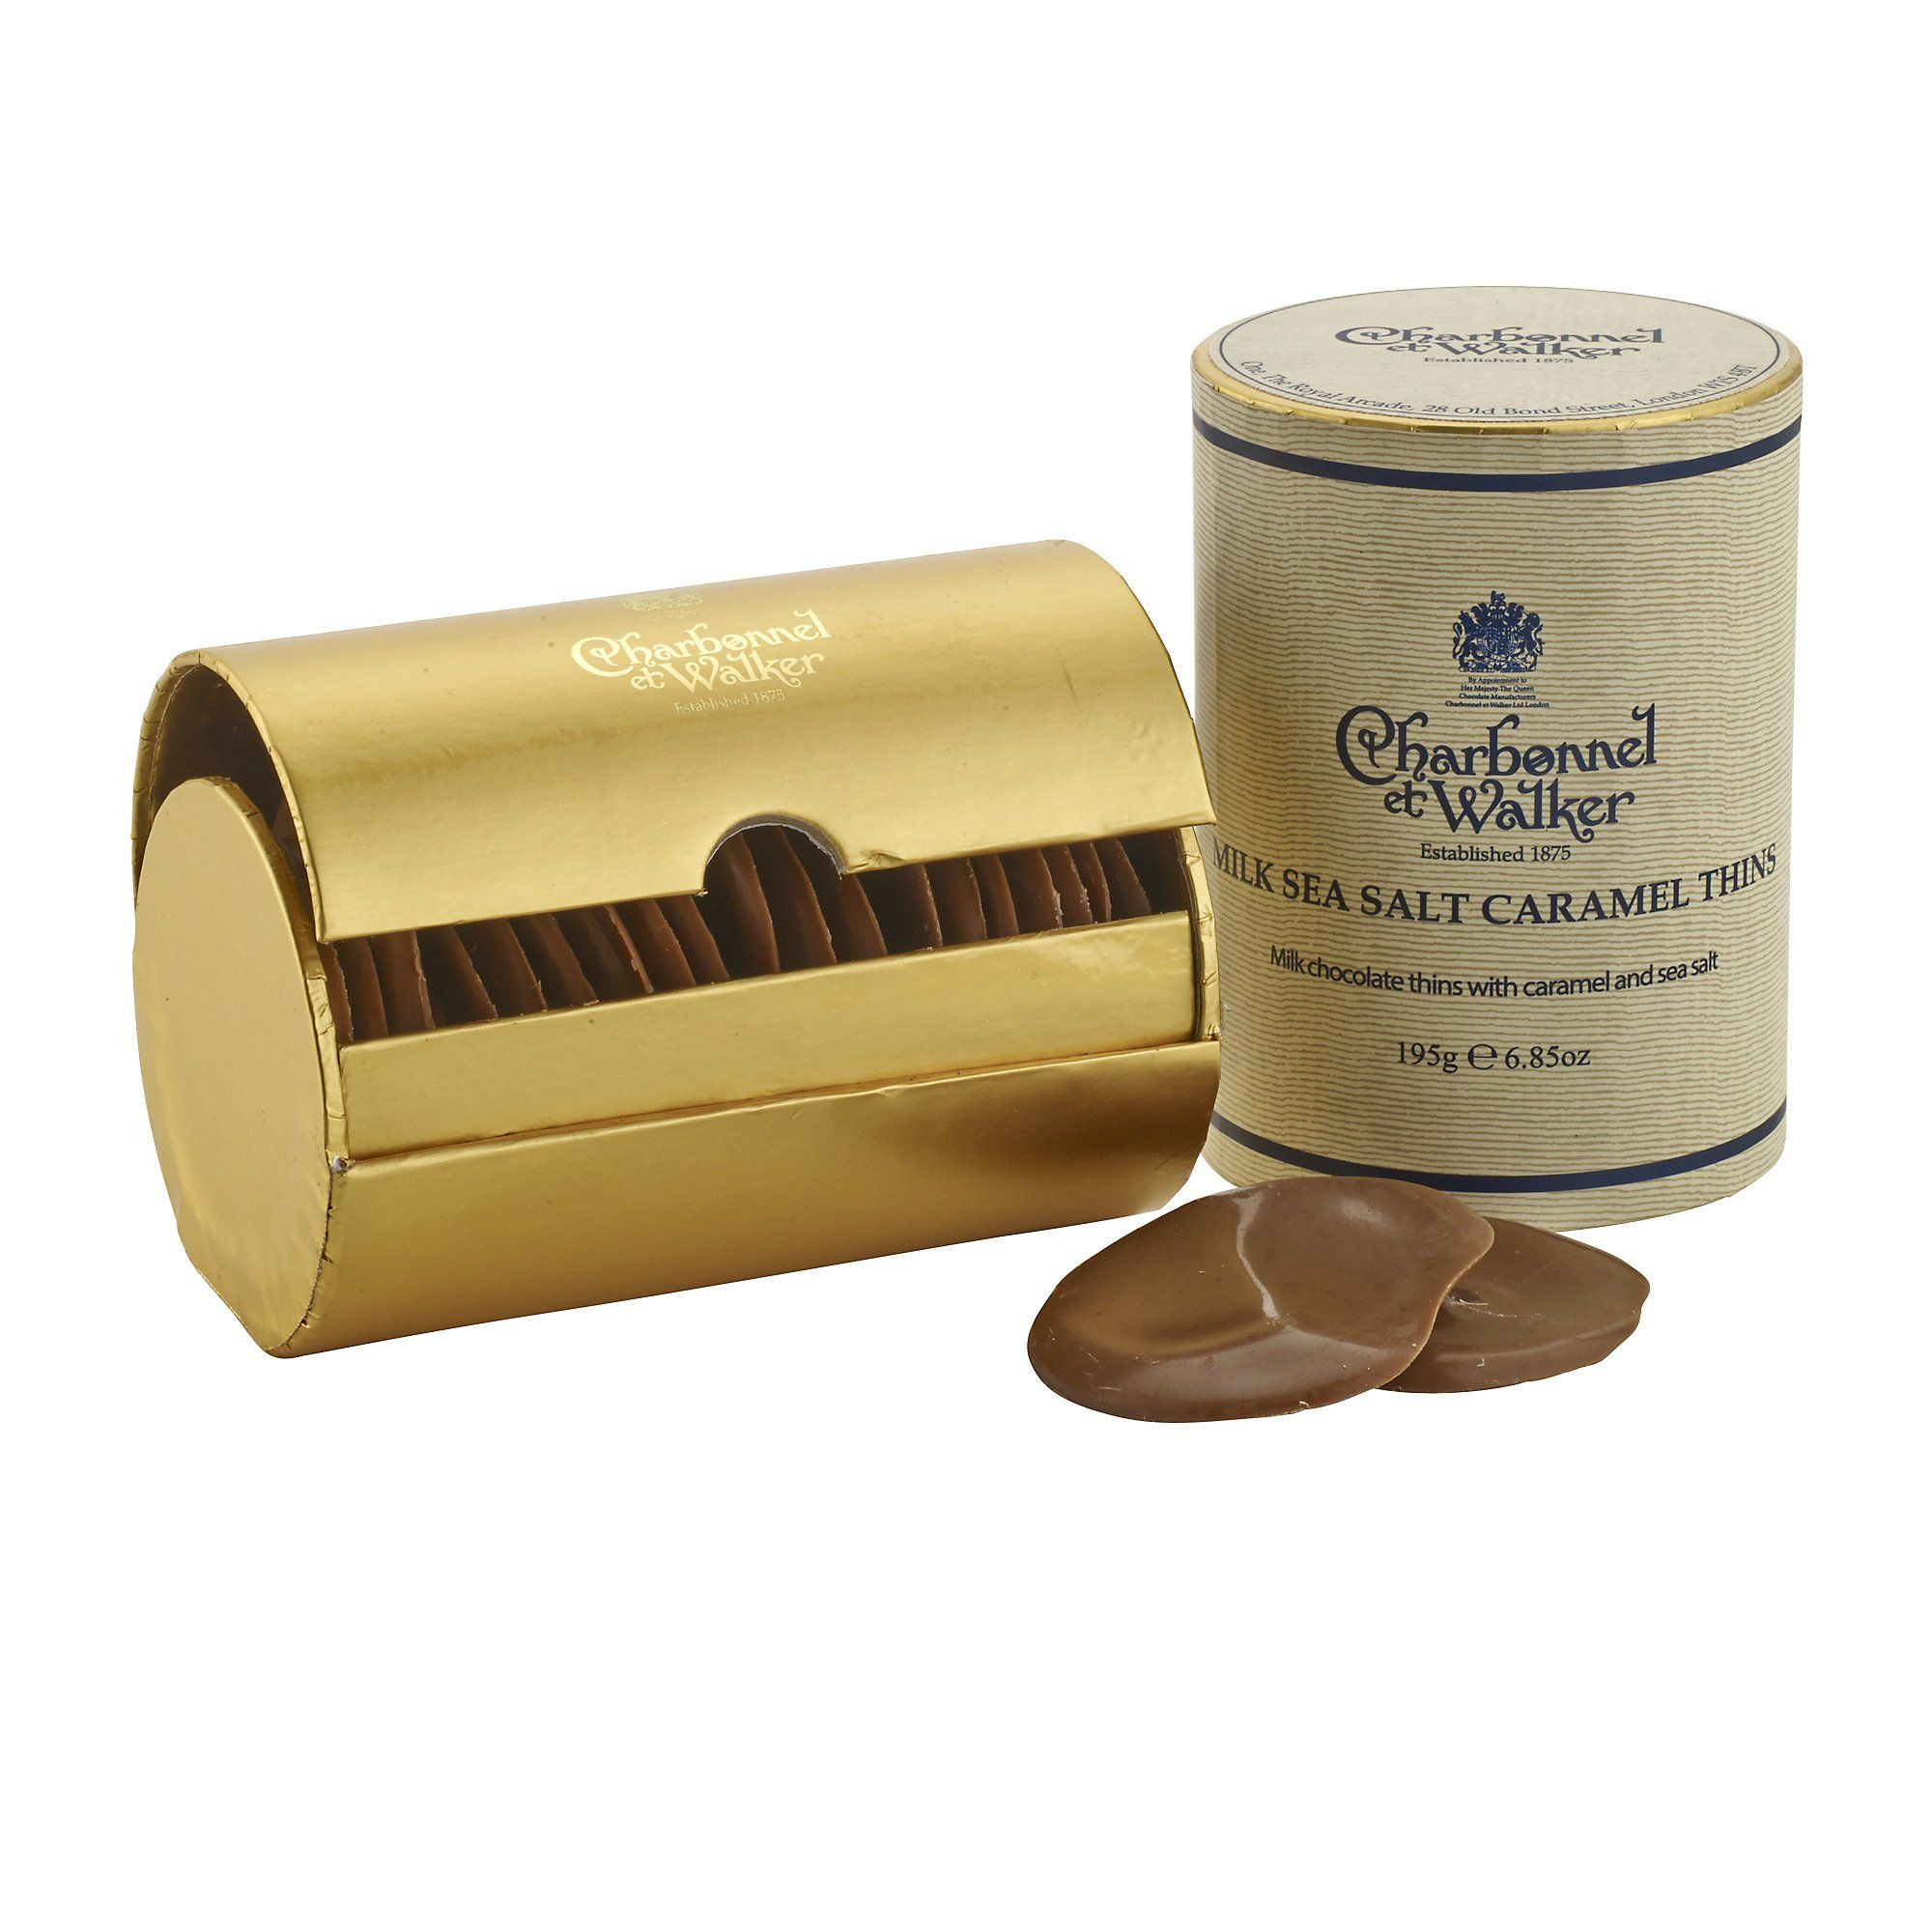 Charbonnel Et Walker Milk Sea Salt Caramel Thins 200g